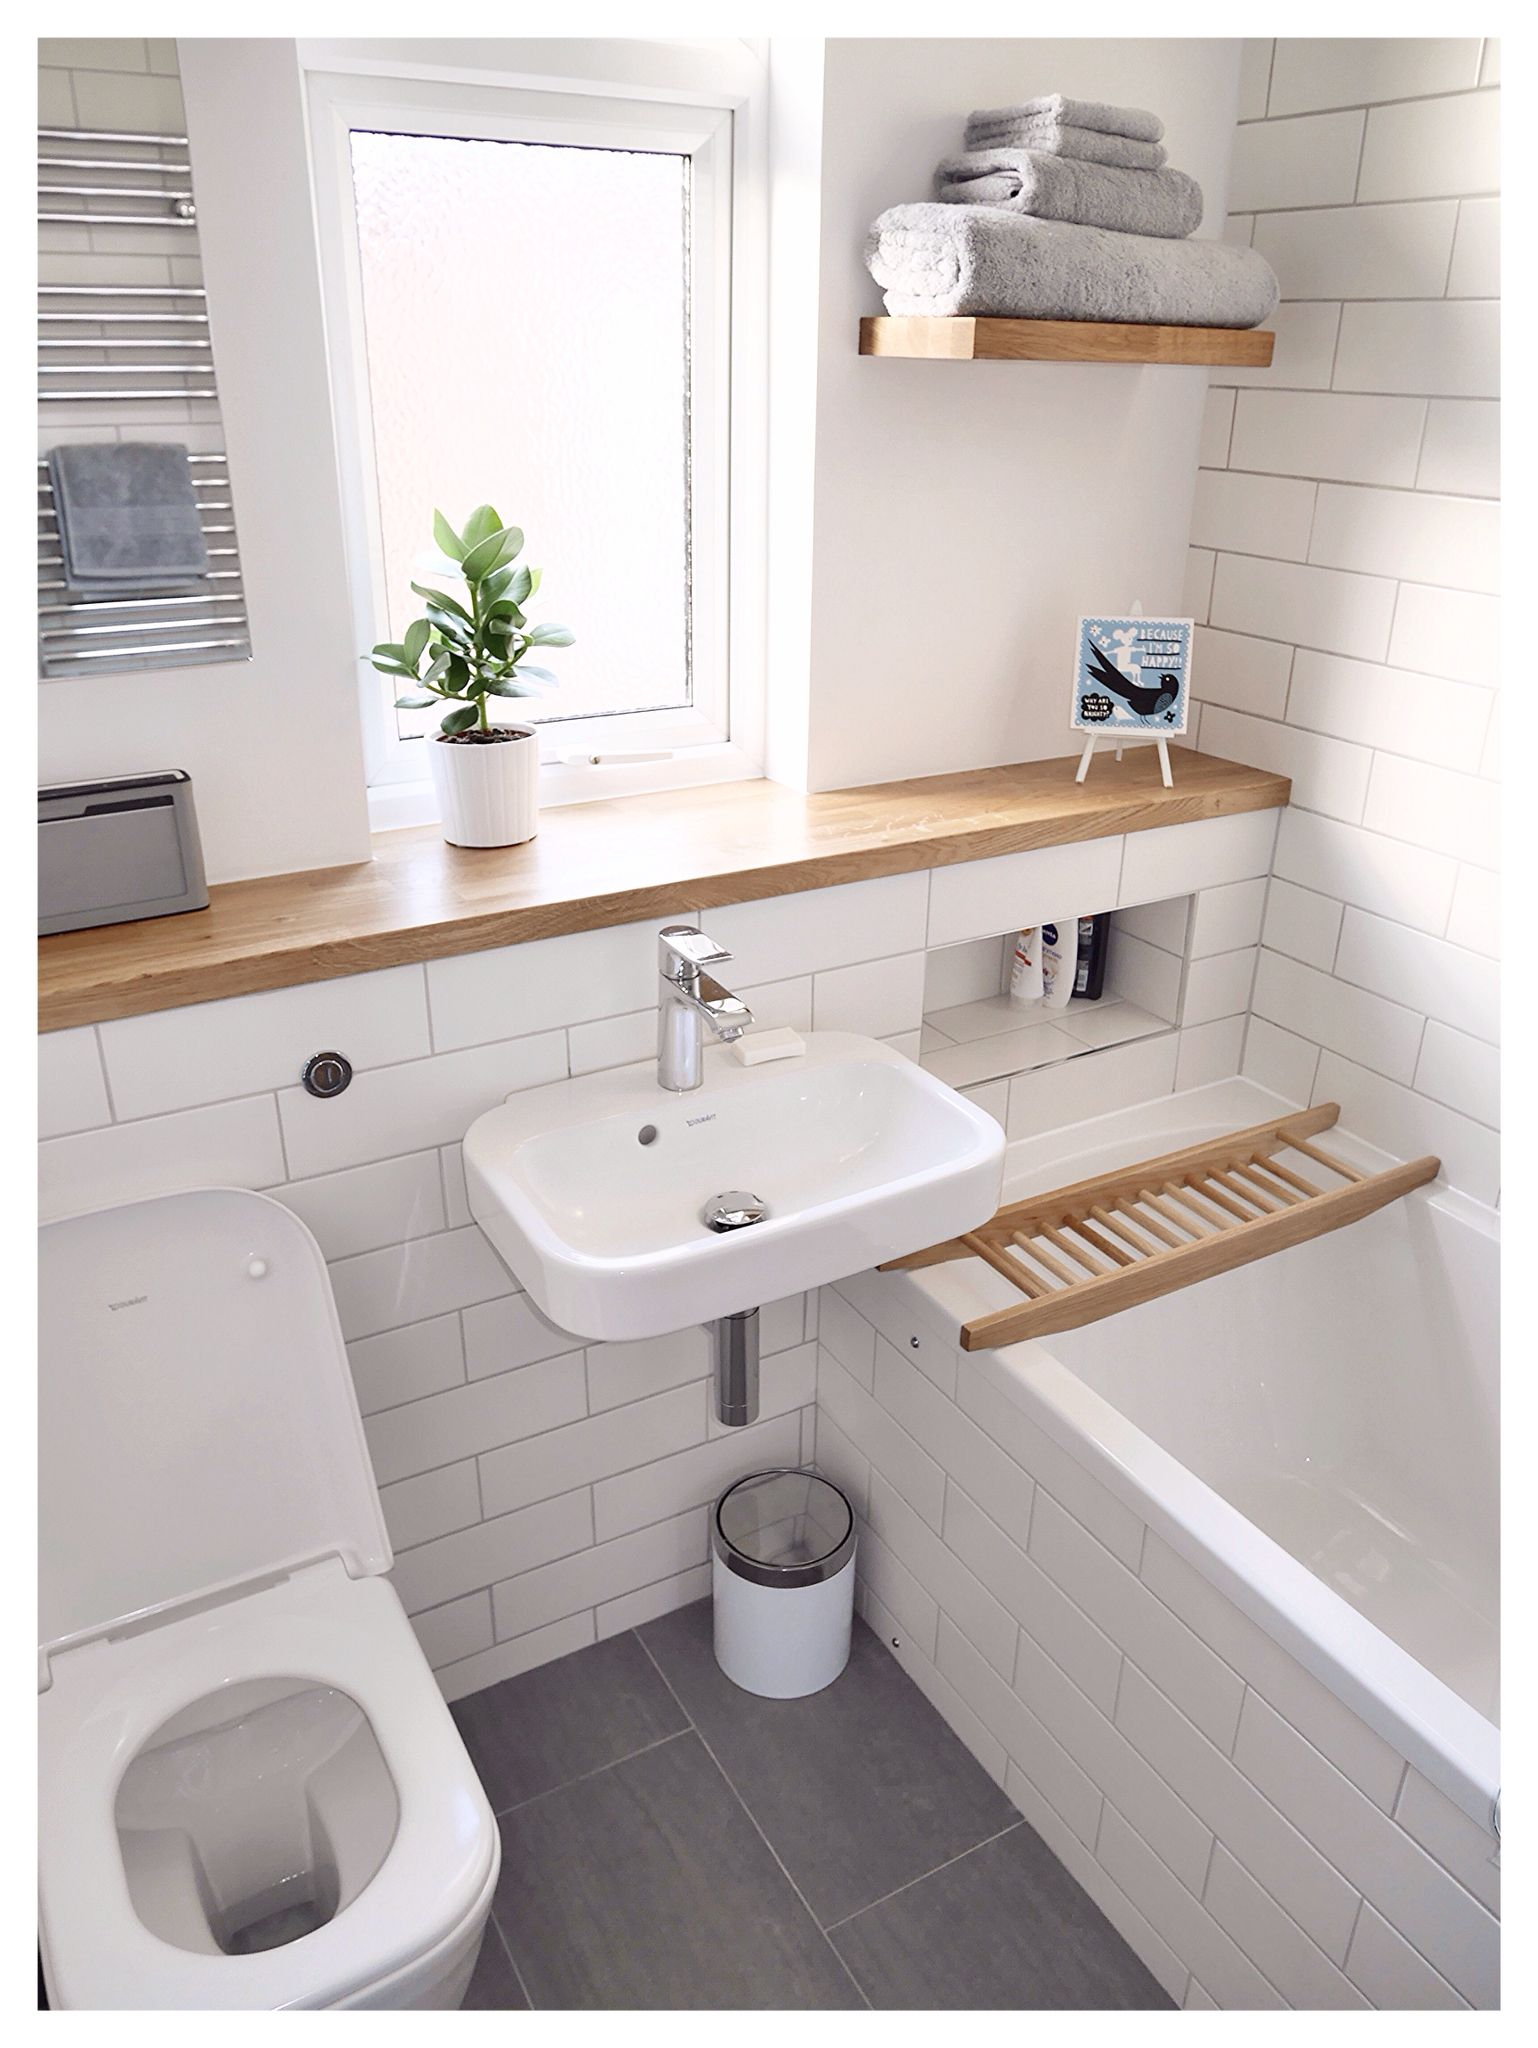 25+ Beautiful Small Bathroom Ideas | Oak shelves, Topps tiles and ...